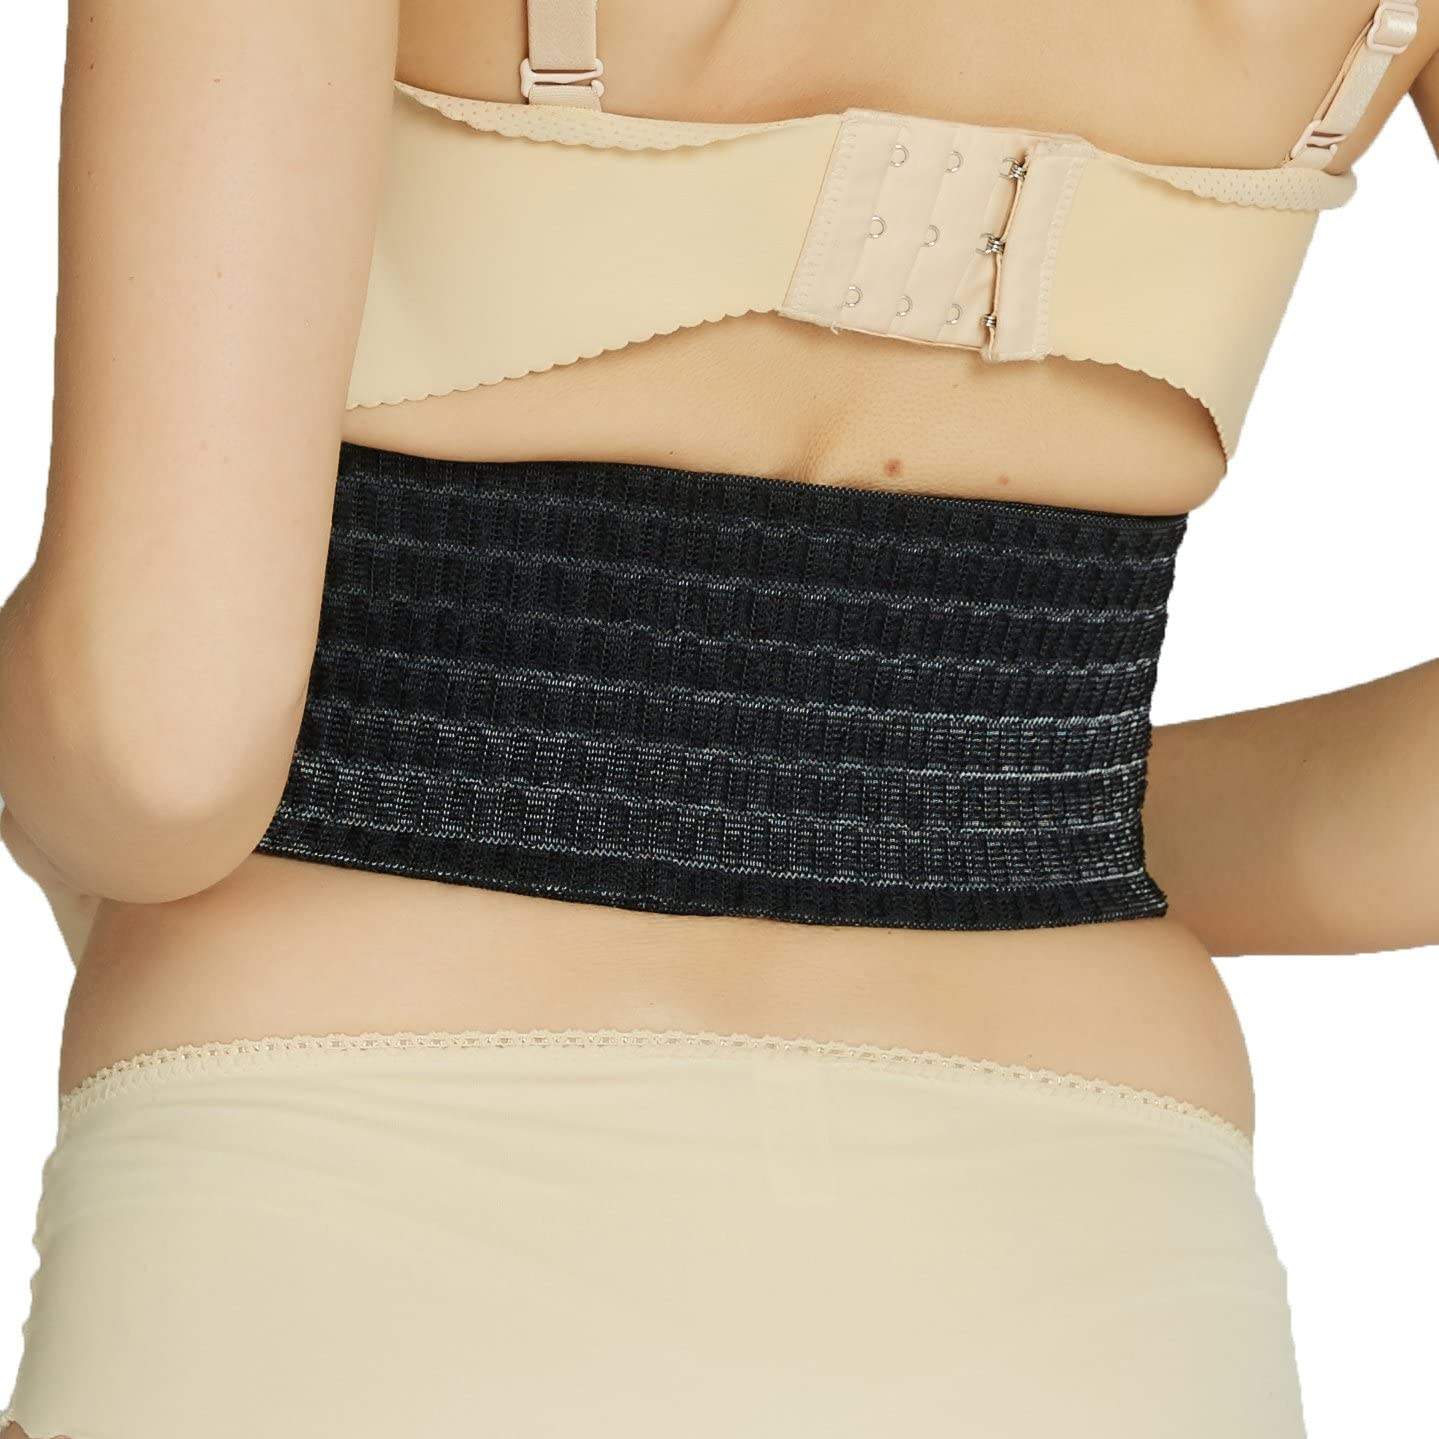 Neotech Care 3-in-1 Maternity Pregnancy Support, Postpartum Belly Wrap & Pelvis Belt/Brace/Band - Breathable Girdle - Black - XL Size: Health & Personal Care